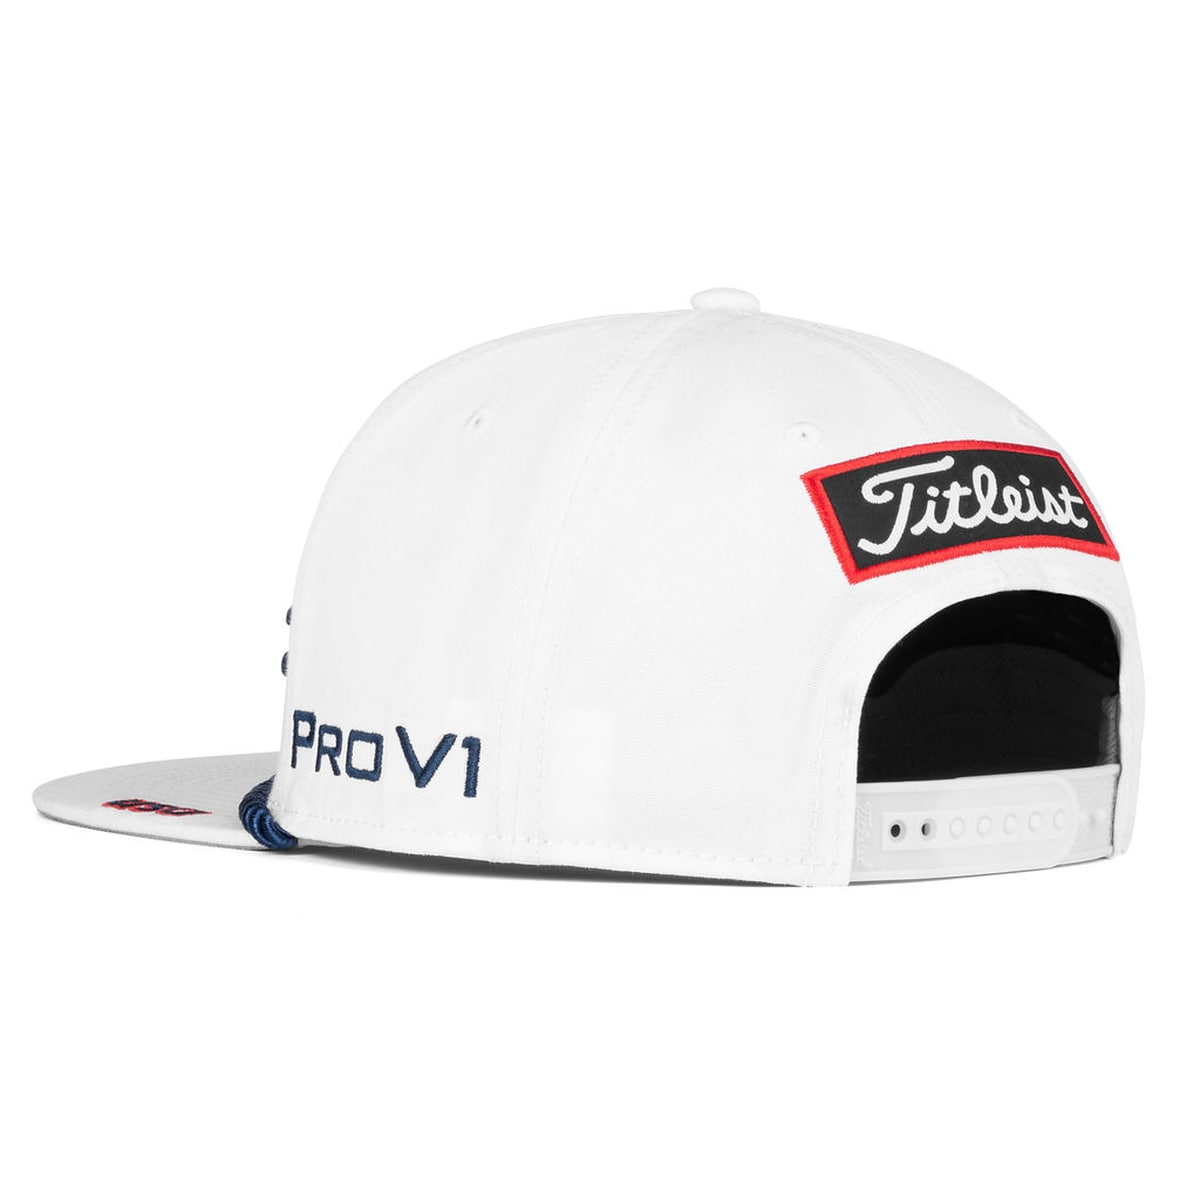 Stars and Stripes Tour Rope Flat Bill Hat